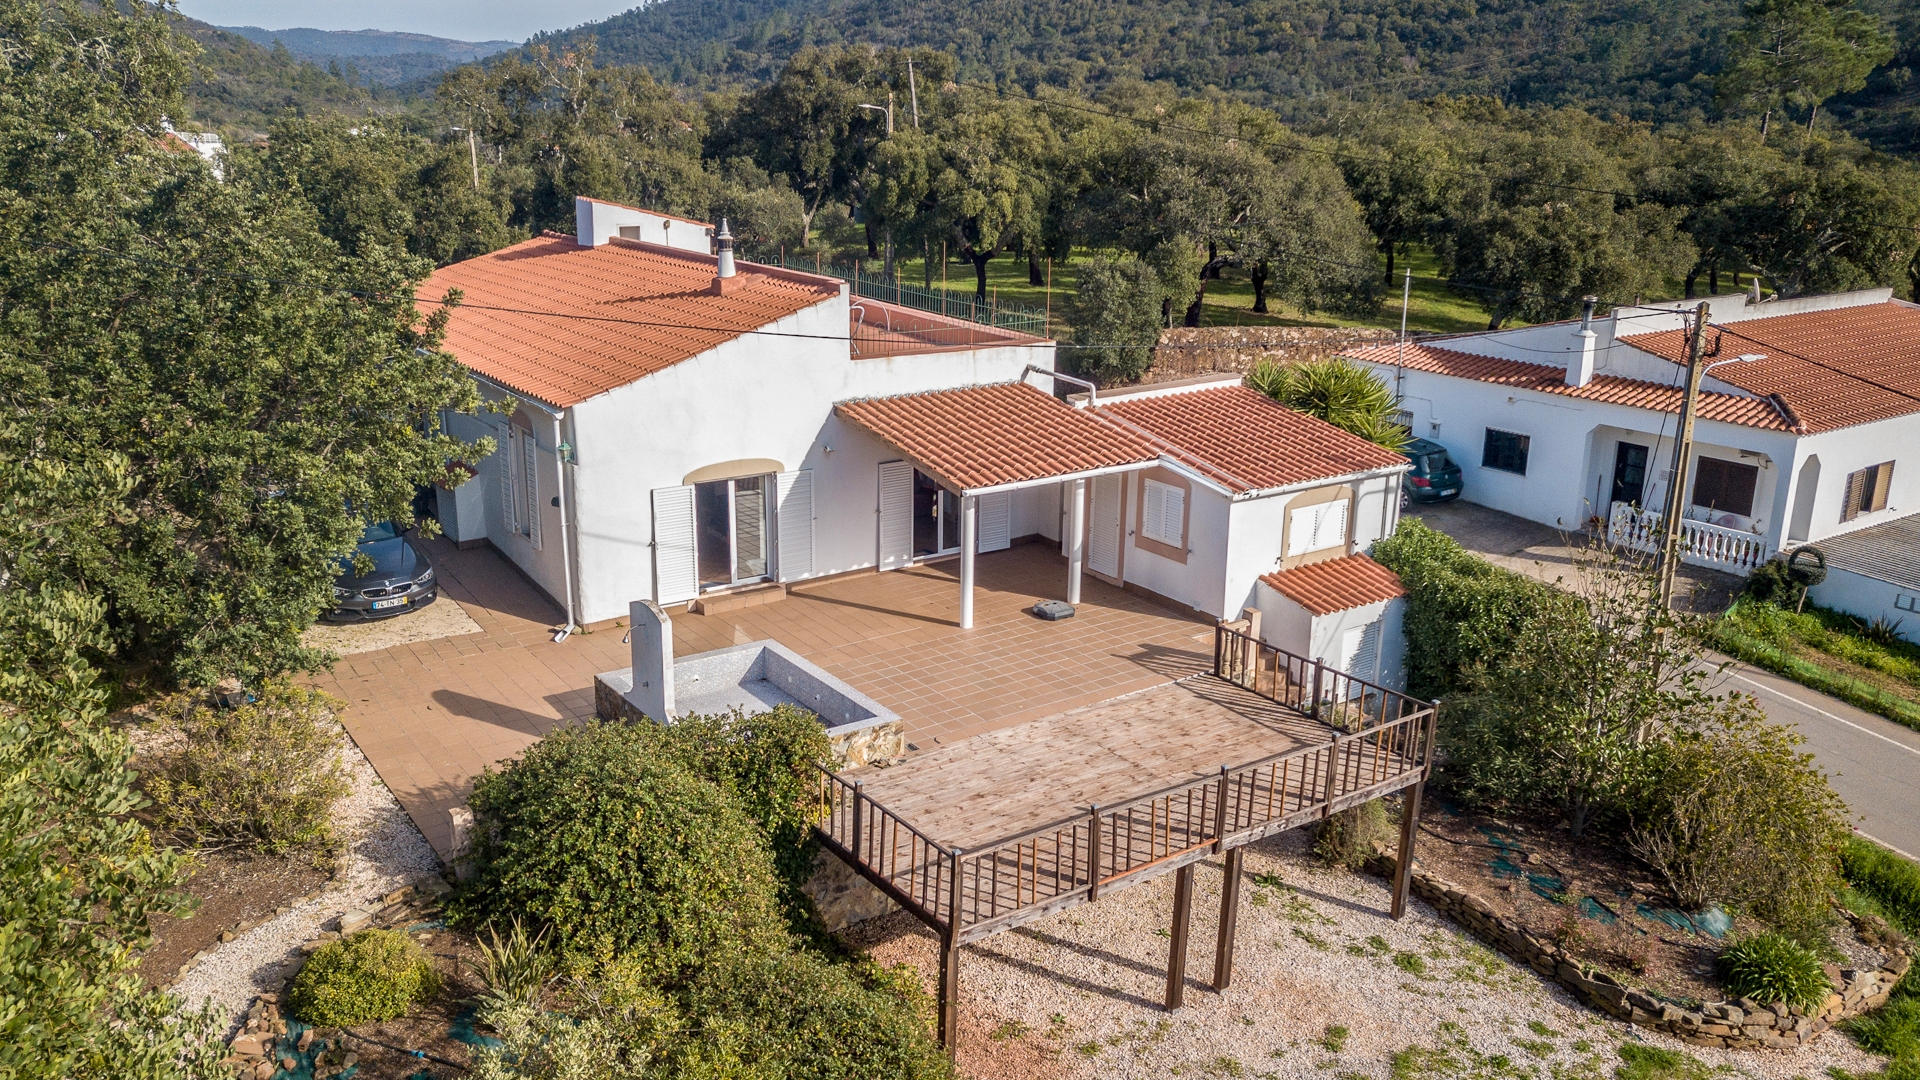 3 Bedroom Traditional Portuguese House set in the dramatically beautiful hills beyond Salir | VM1267 Traditional house in the countryside, perfect for those seeking absolute peace and quiet away from the crowds of the coast. Rebuilt with all new plumbing and wiring, new kitchen and bathrooms